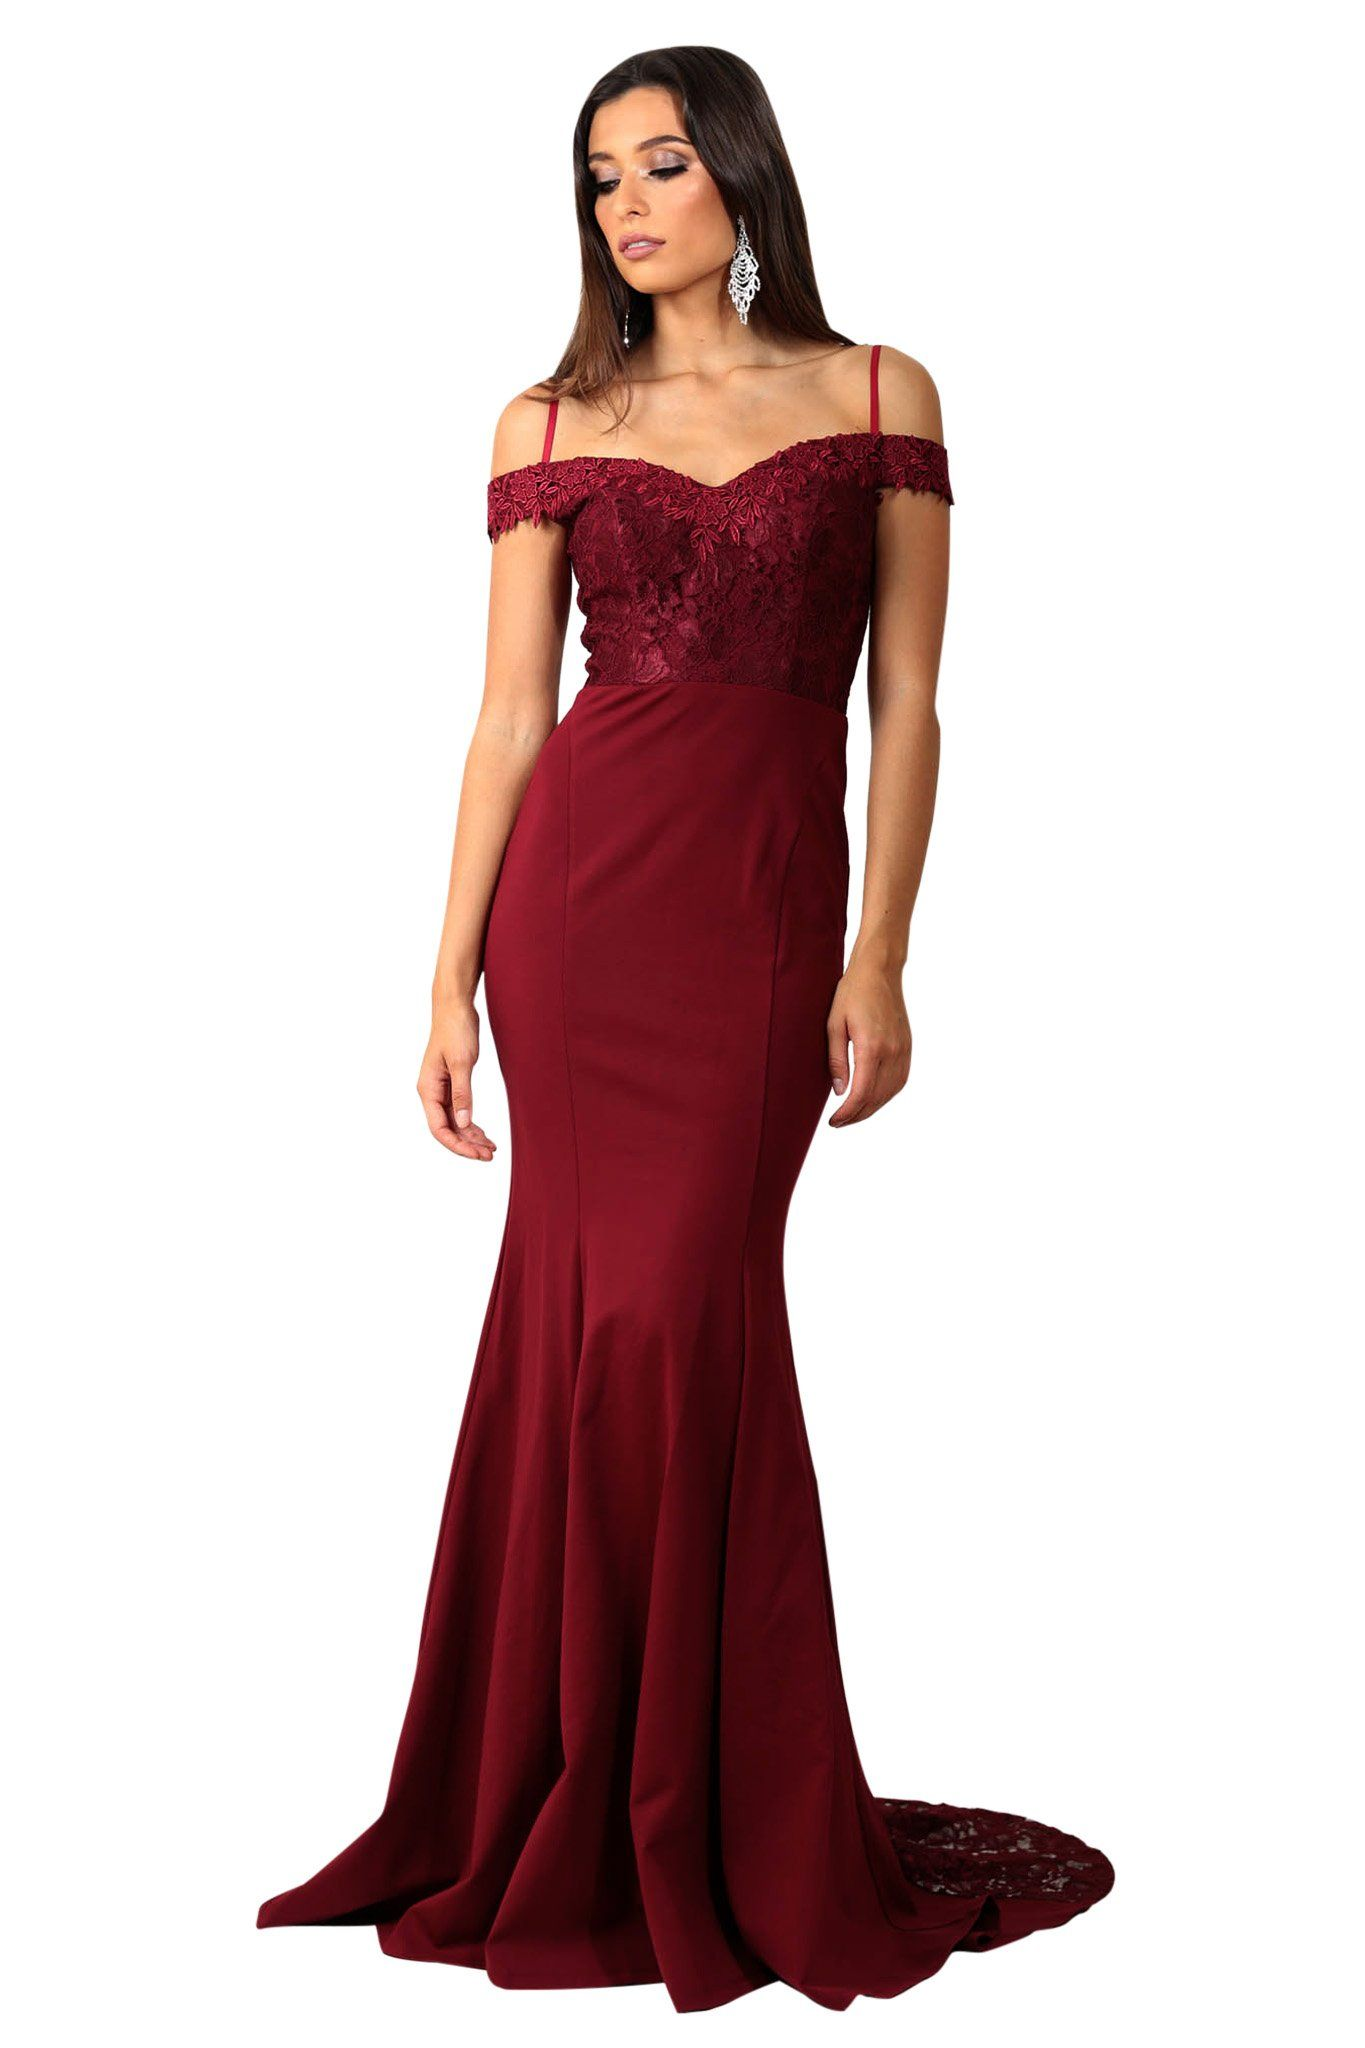 Off the shoulder evening long gown in wine red color with sweetheart neckline and lace trim details at the upper body and along the flowing trail